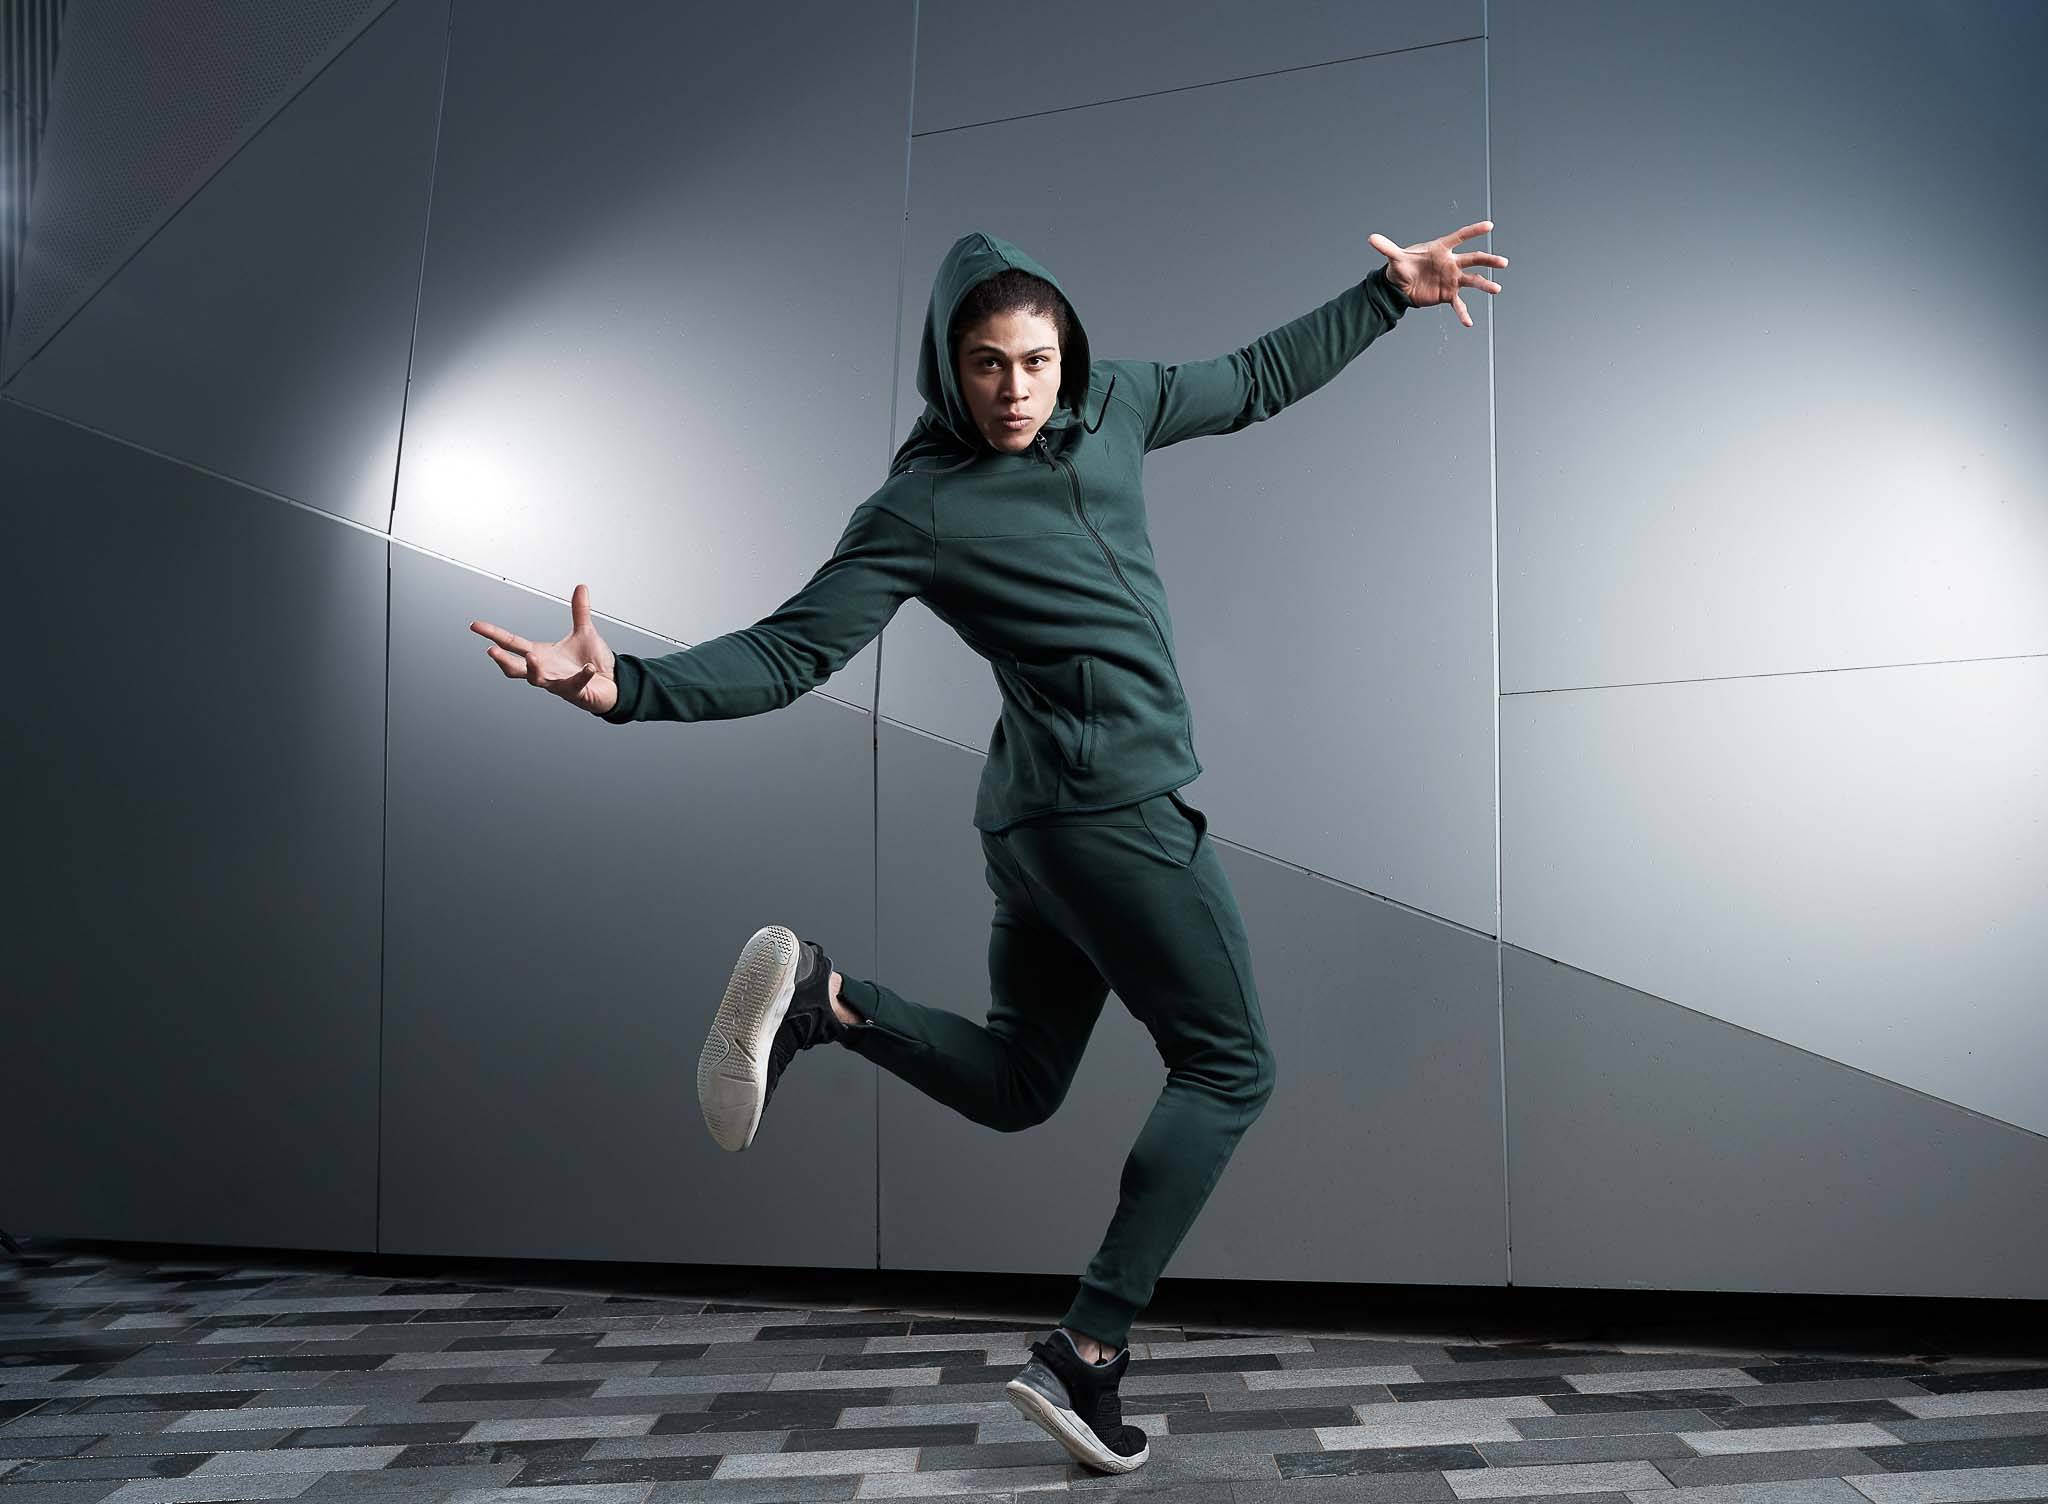 Ossie with his tracksuit hood over his head dancing in green full trucksuit